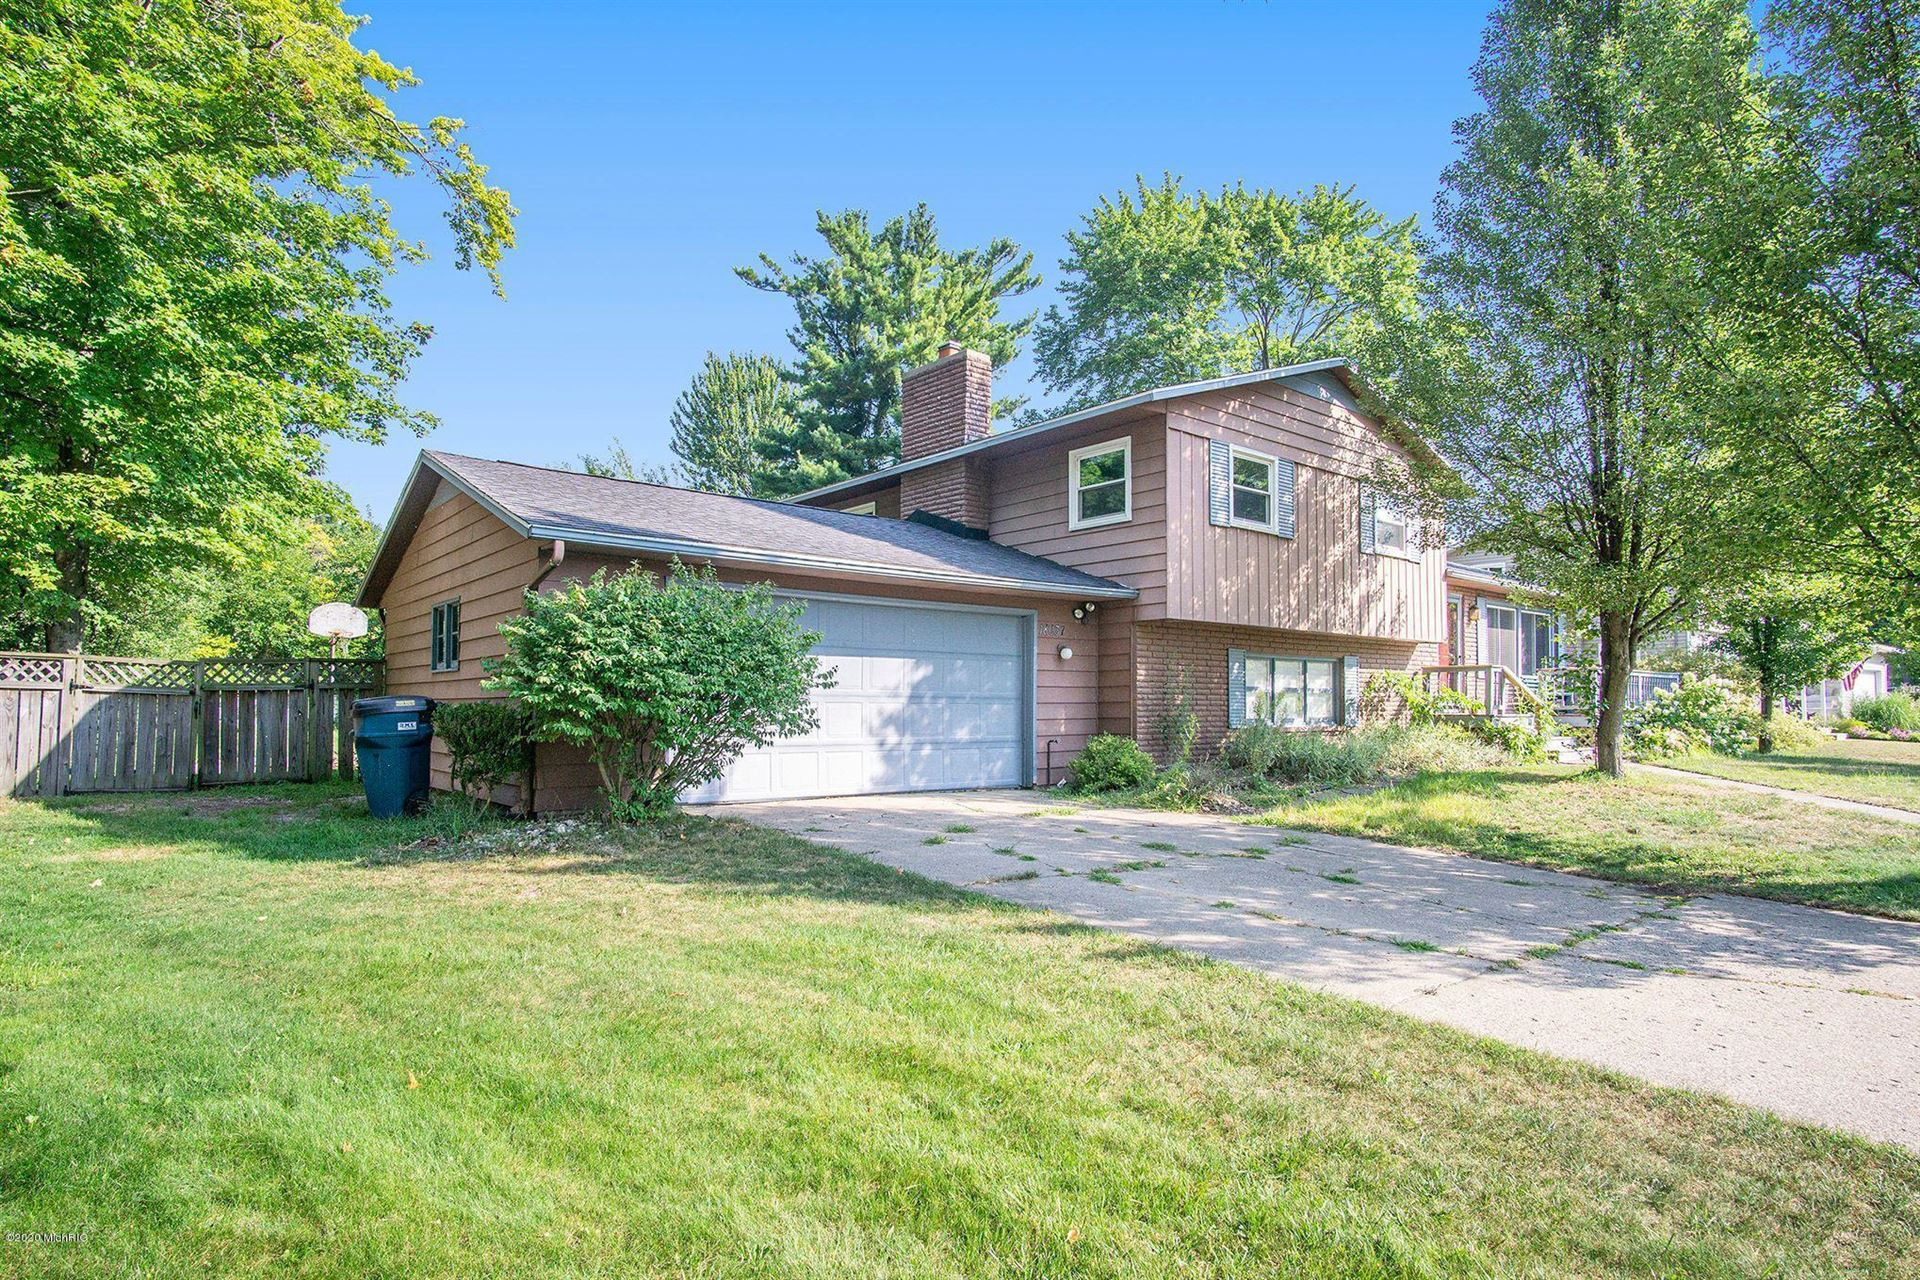 Photo of 18037 Trudy Drive, Spring Lake, MI 49456 (MLS # 20034813)